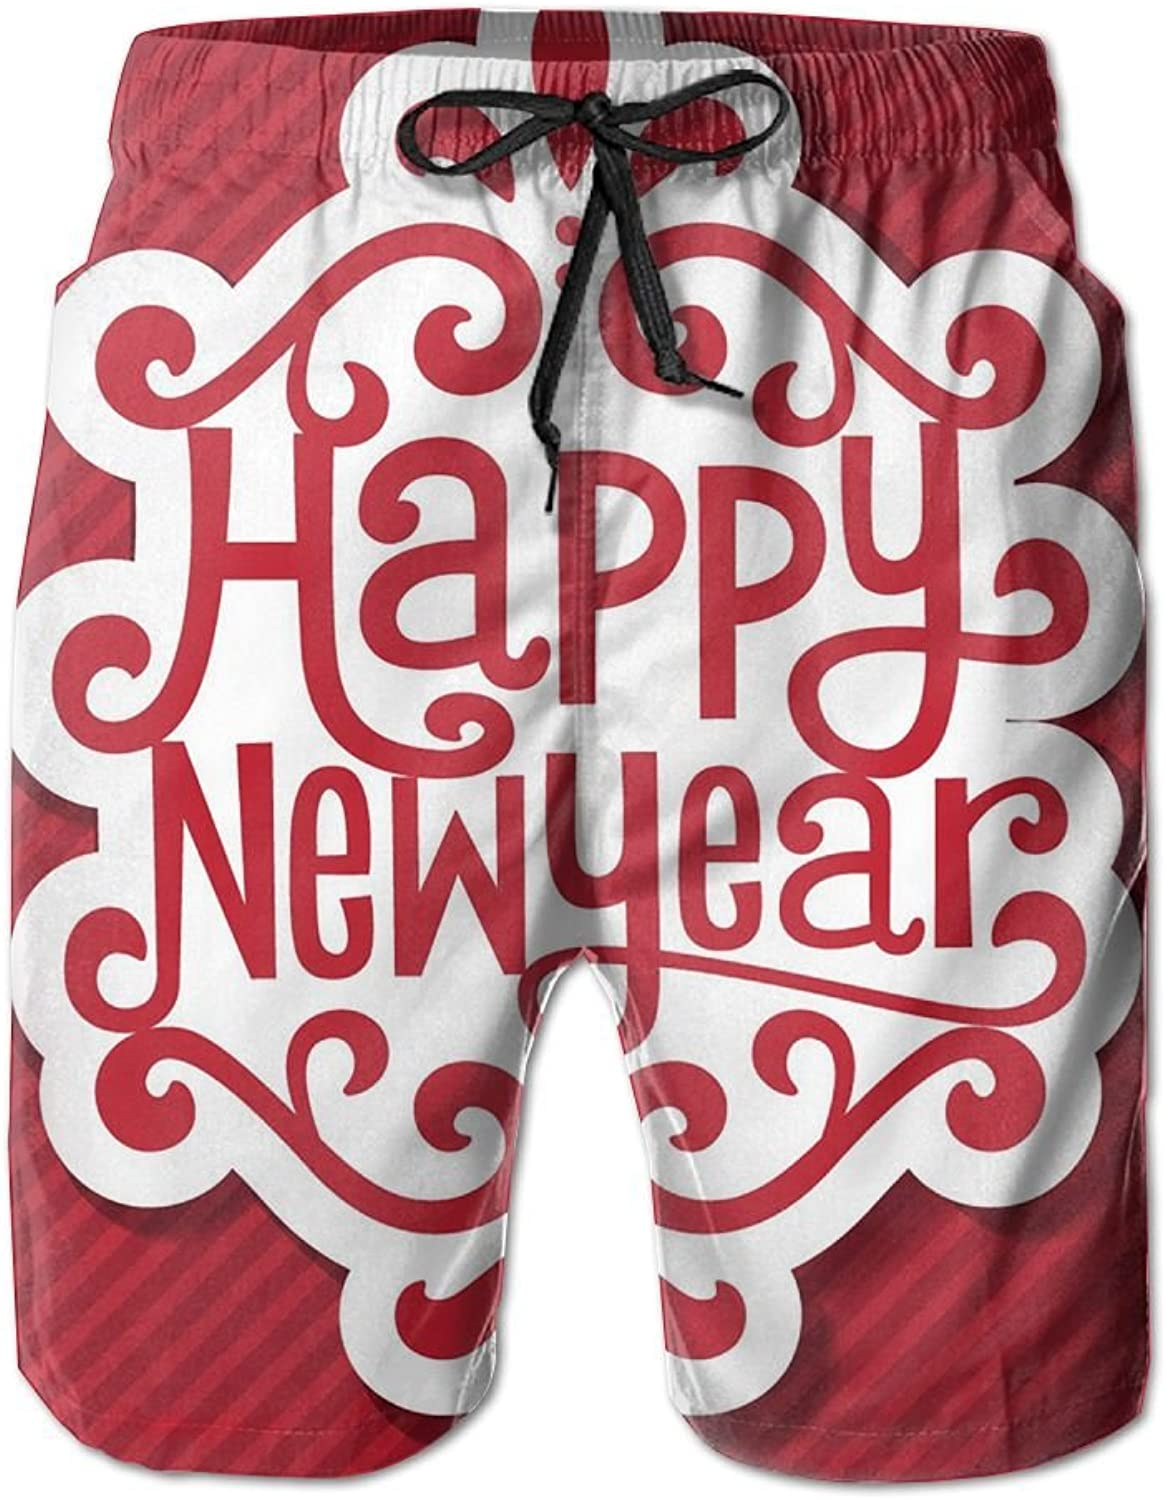 3c9518d233c0d Tydo Happy New Year Men's Beach Beach Beach Shorts Classic Surfing Trunks  Surf Board Pants With Pockets For Men 4e6c66